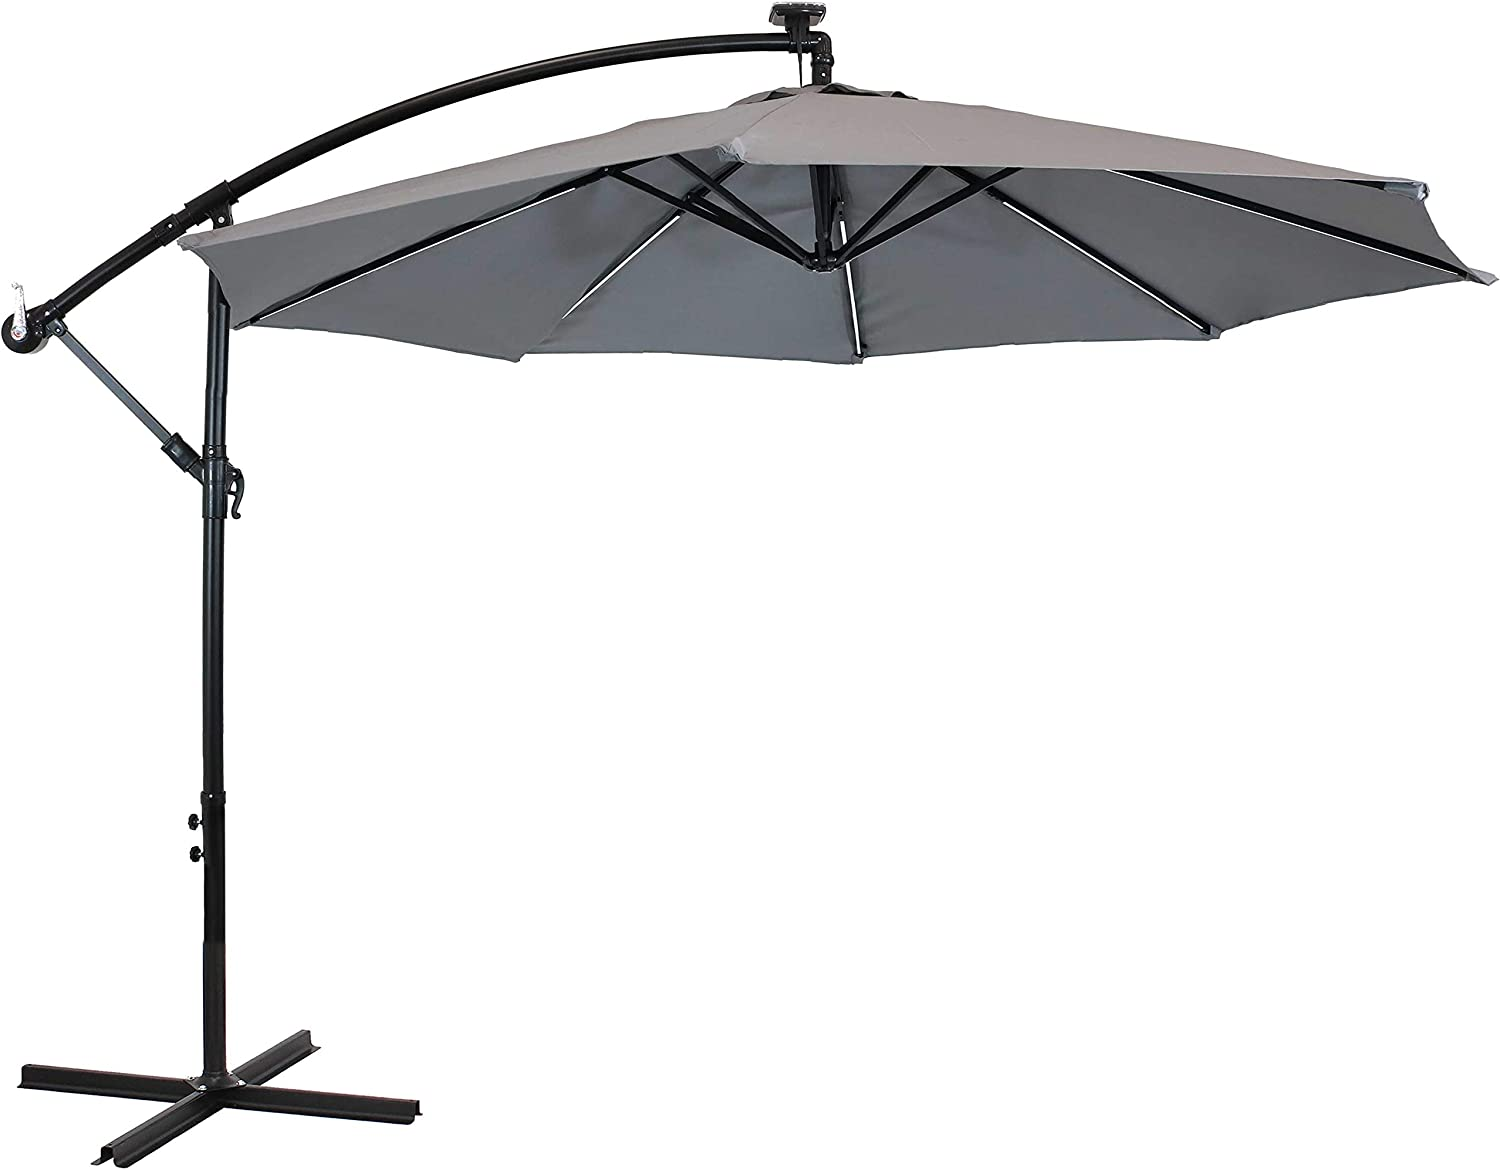 Sunnydaze Outdoor Cantilever Offset Patio Umbrella